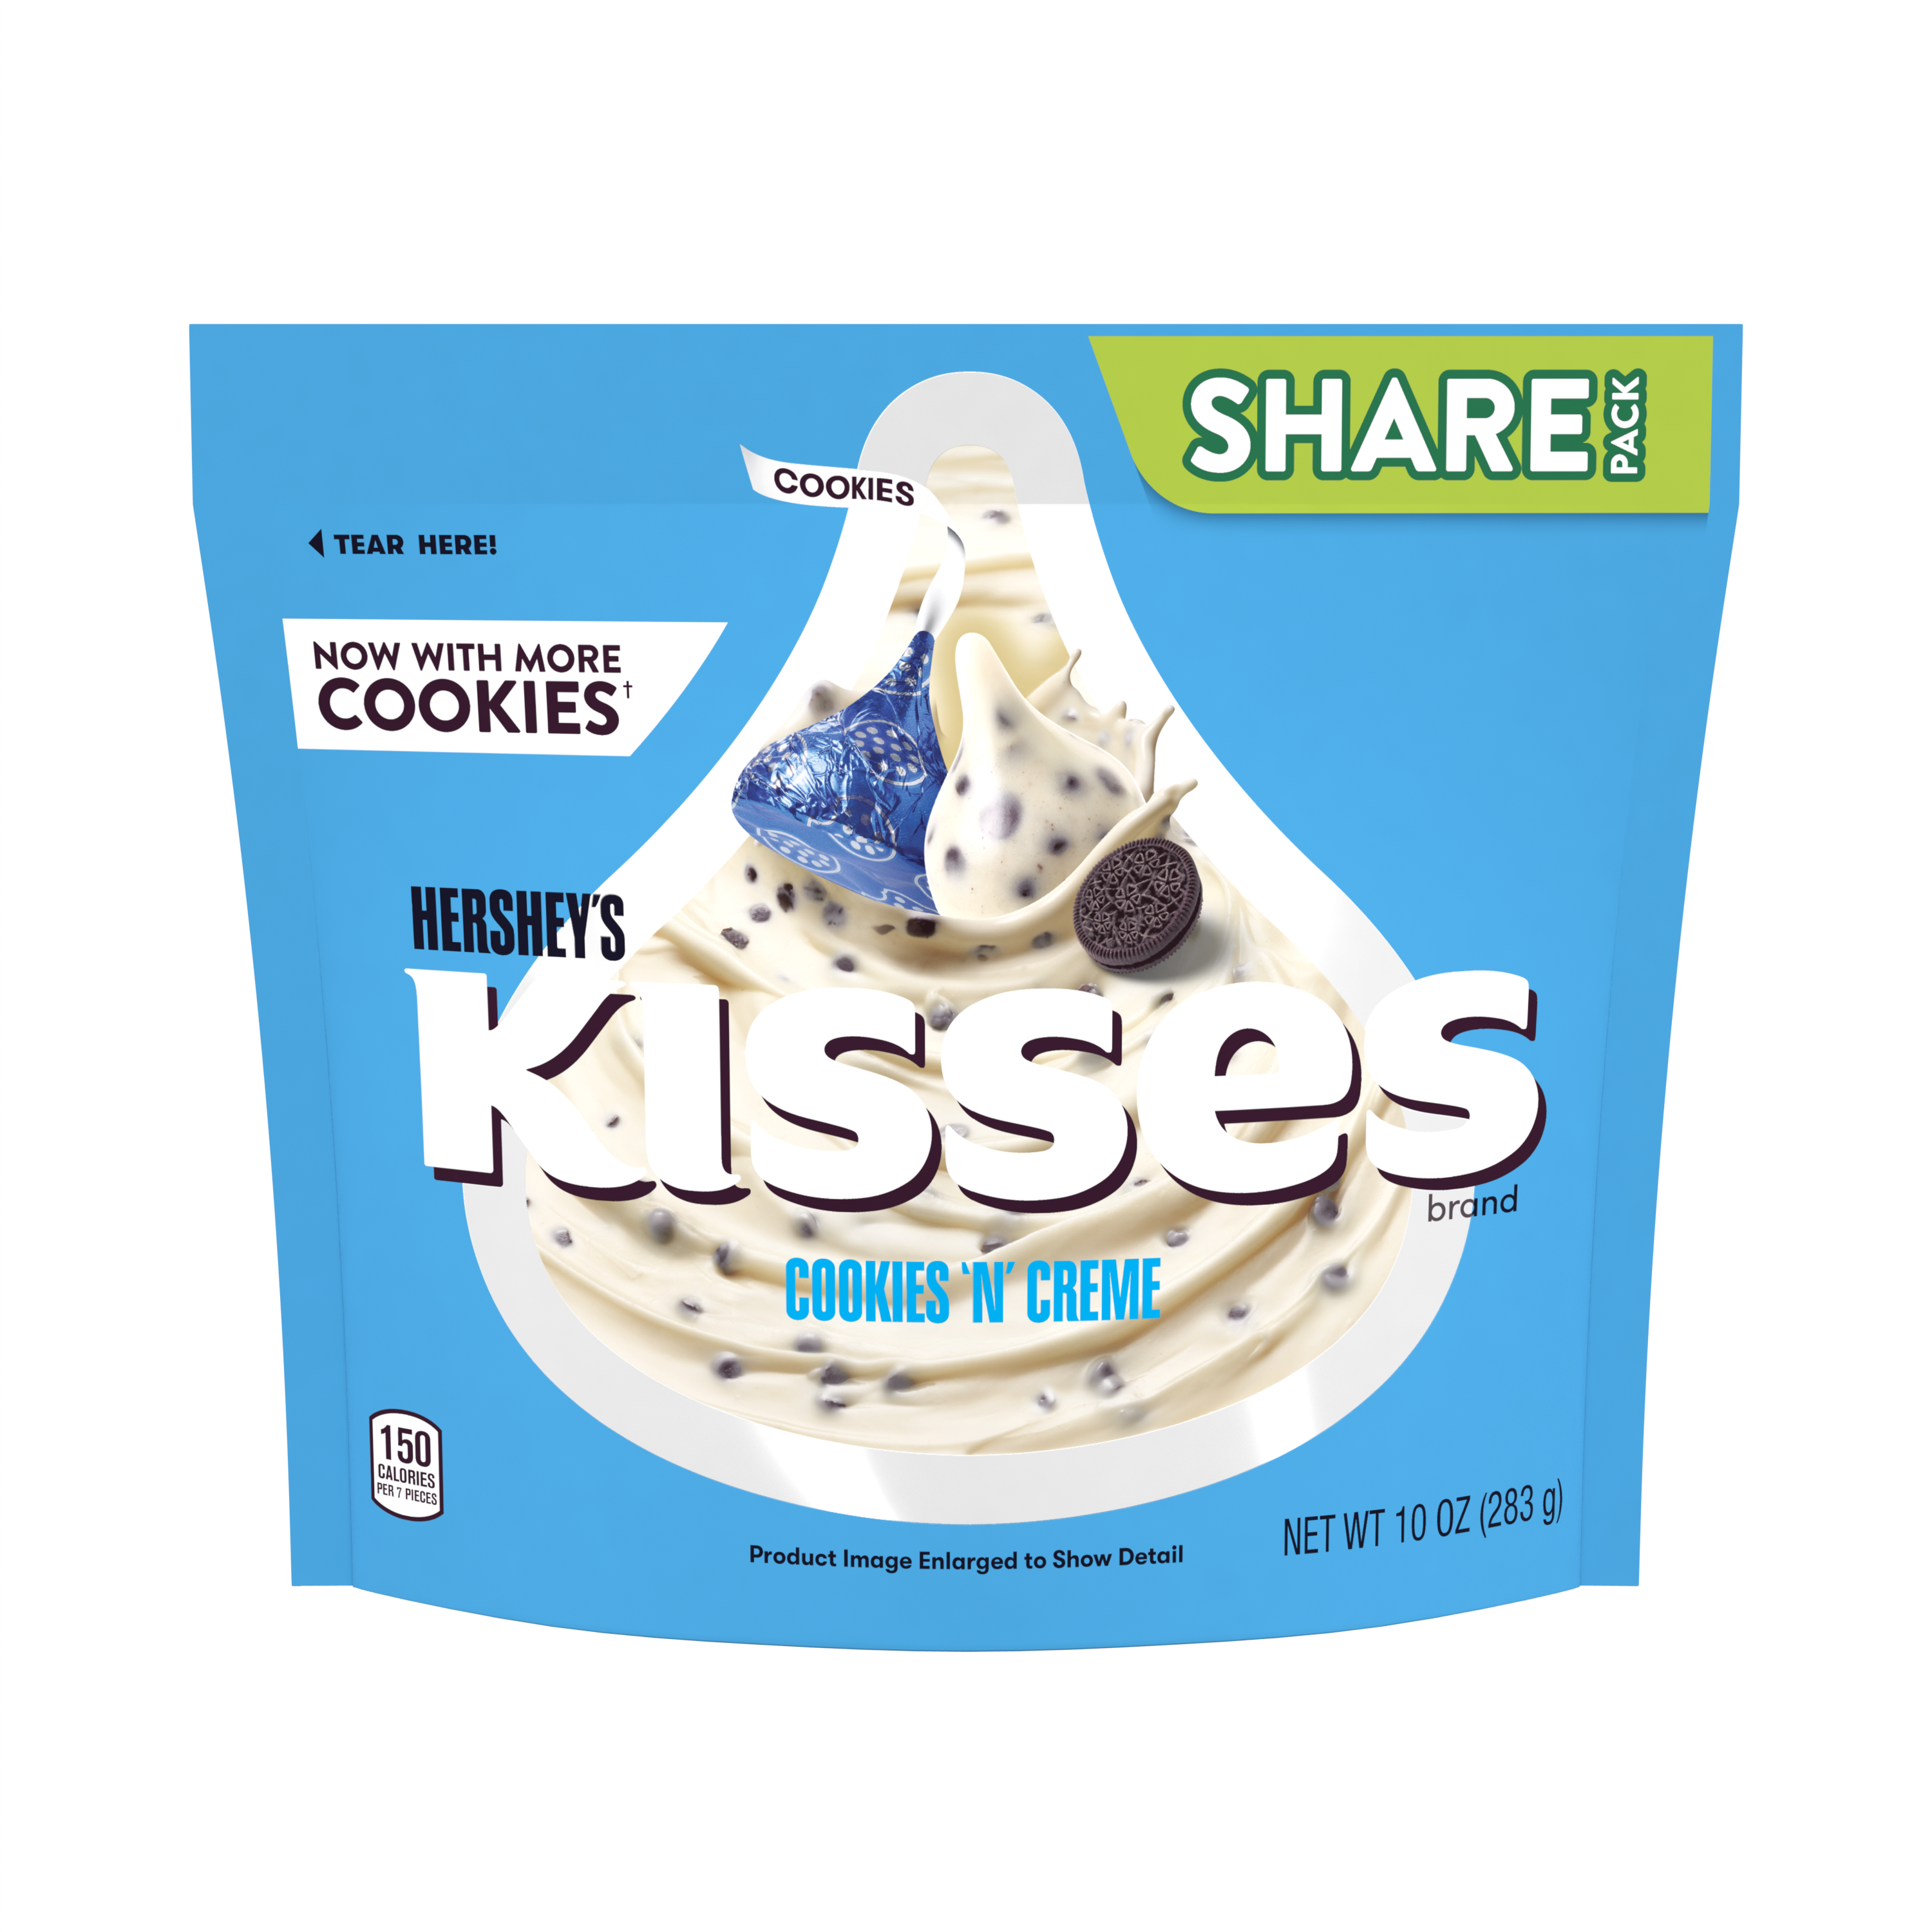 HERSHEY'S KISSES COOKIES 'N' CREME Candy, 10 oz pack - Front of Package